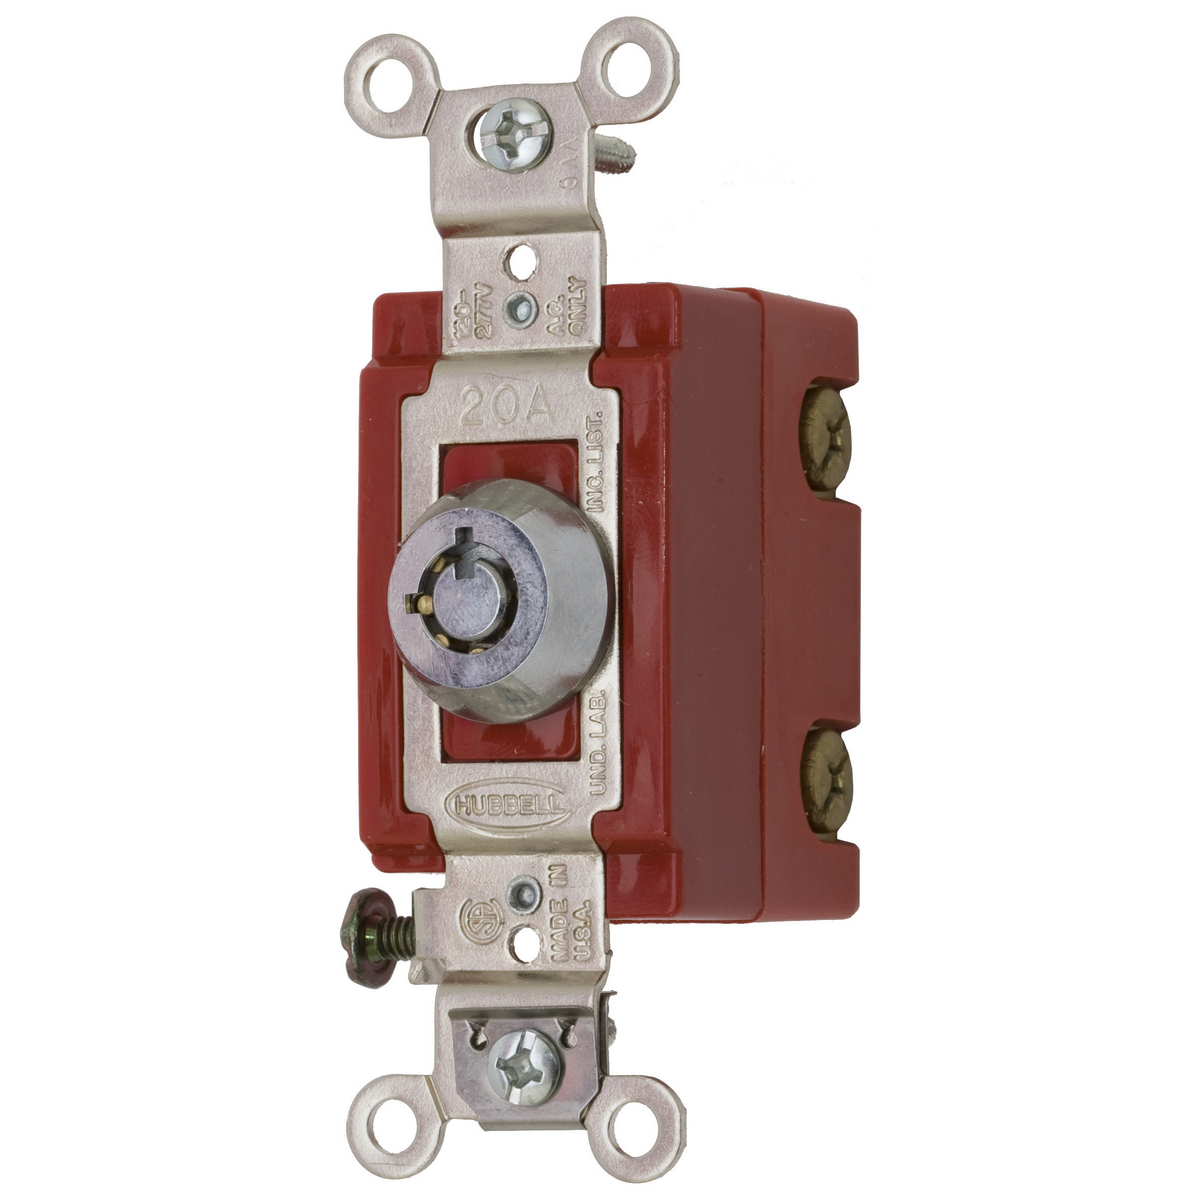 HBL1221RKL | Industrial Series Switches | Electrical Switches ...